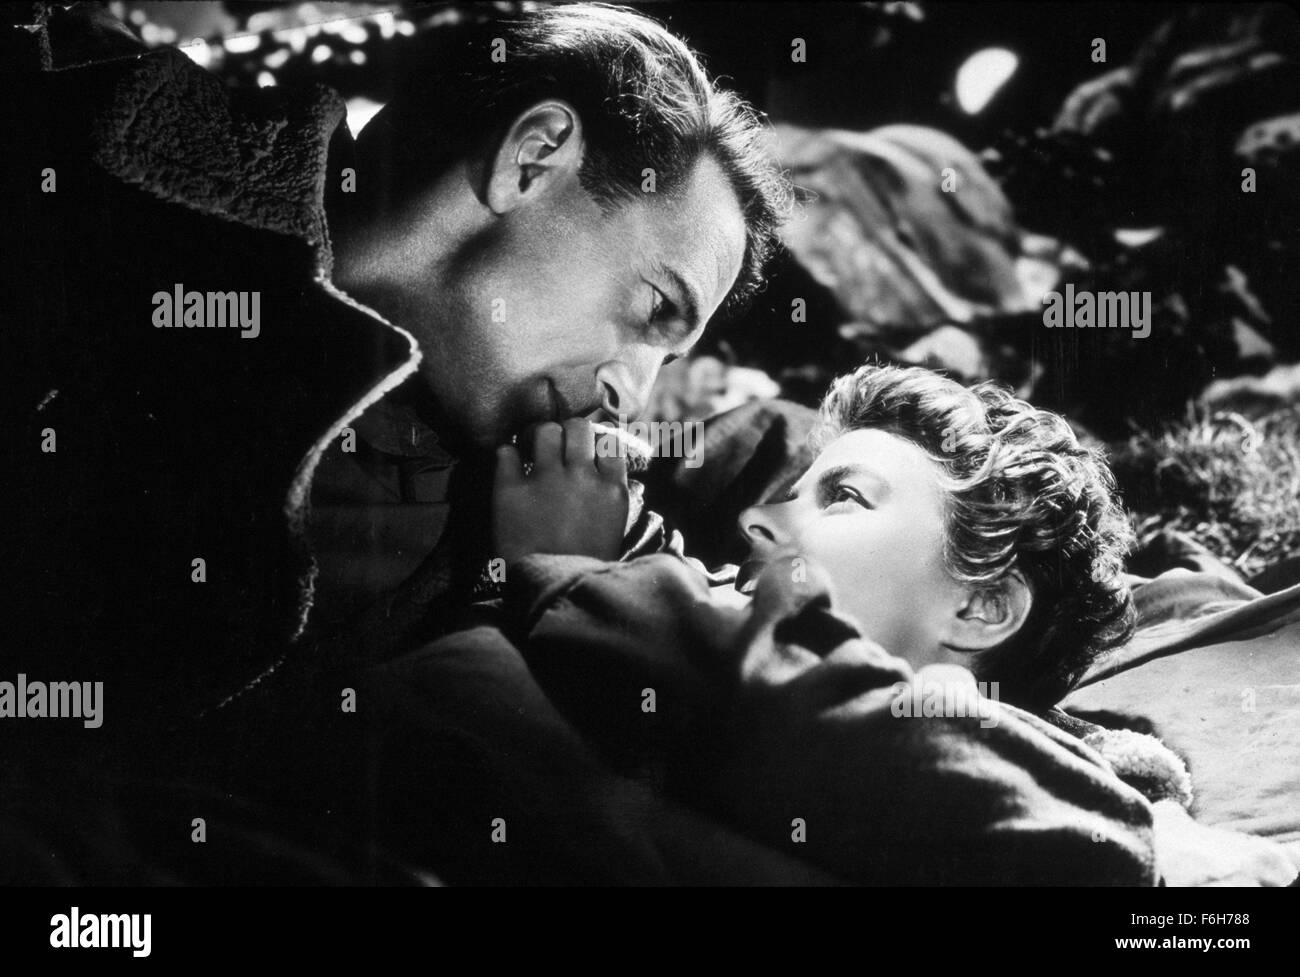 1943, Film Title: FOR WHOM THE BELL TOLLS, Director: SAM WOOD, Studio: PARAMOUNT, Pictured: INGRID BERGMAN, GARY - Stock Image